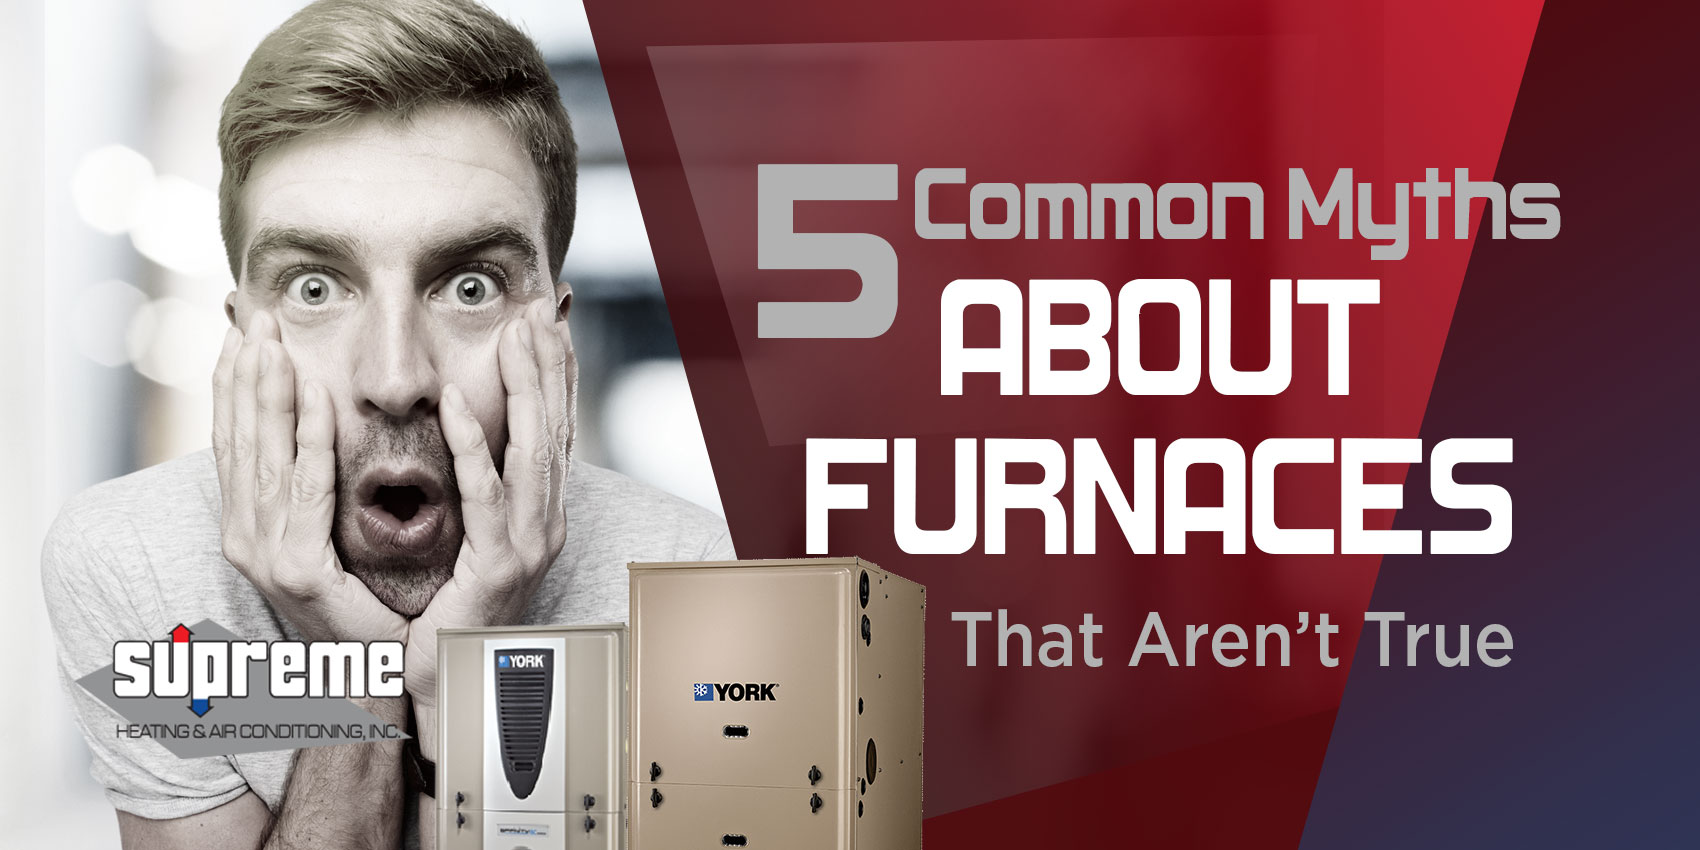 5 Common Myths About Furnaces That Aren't True